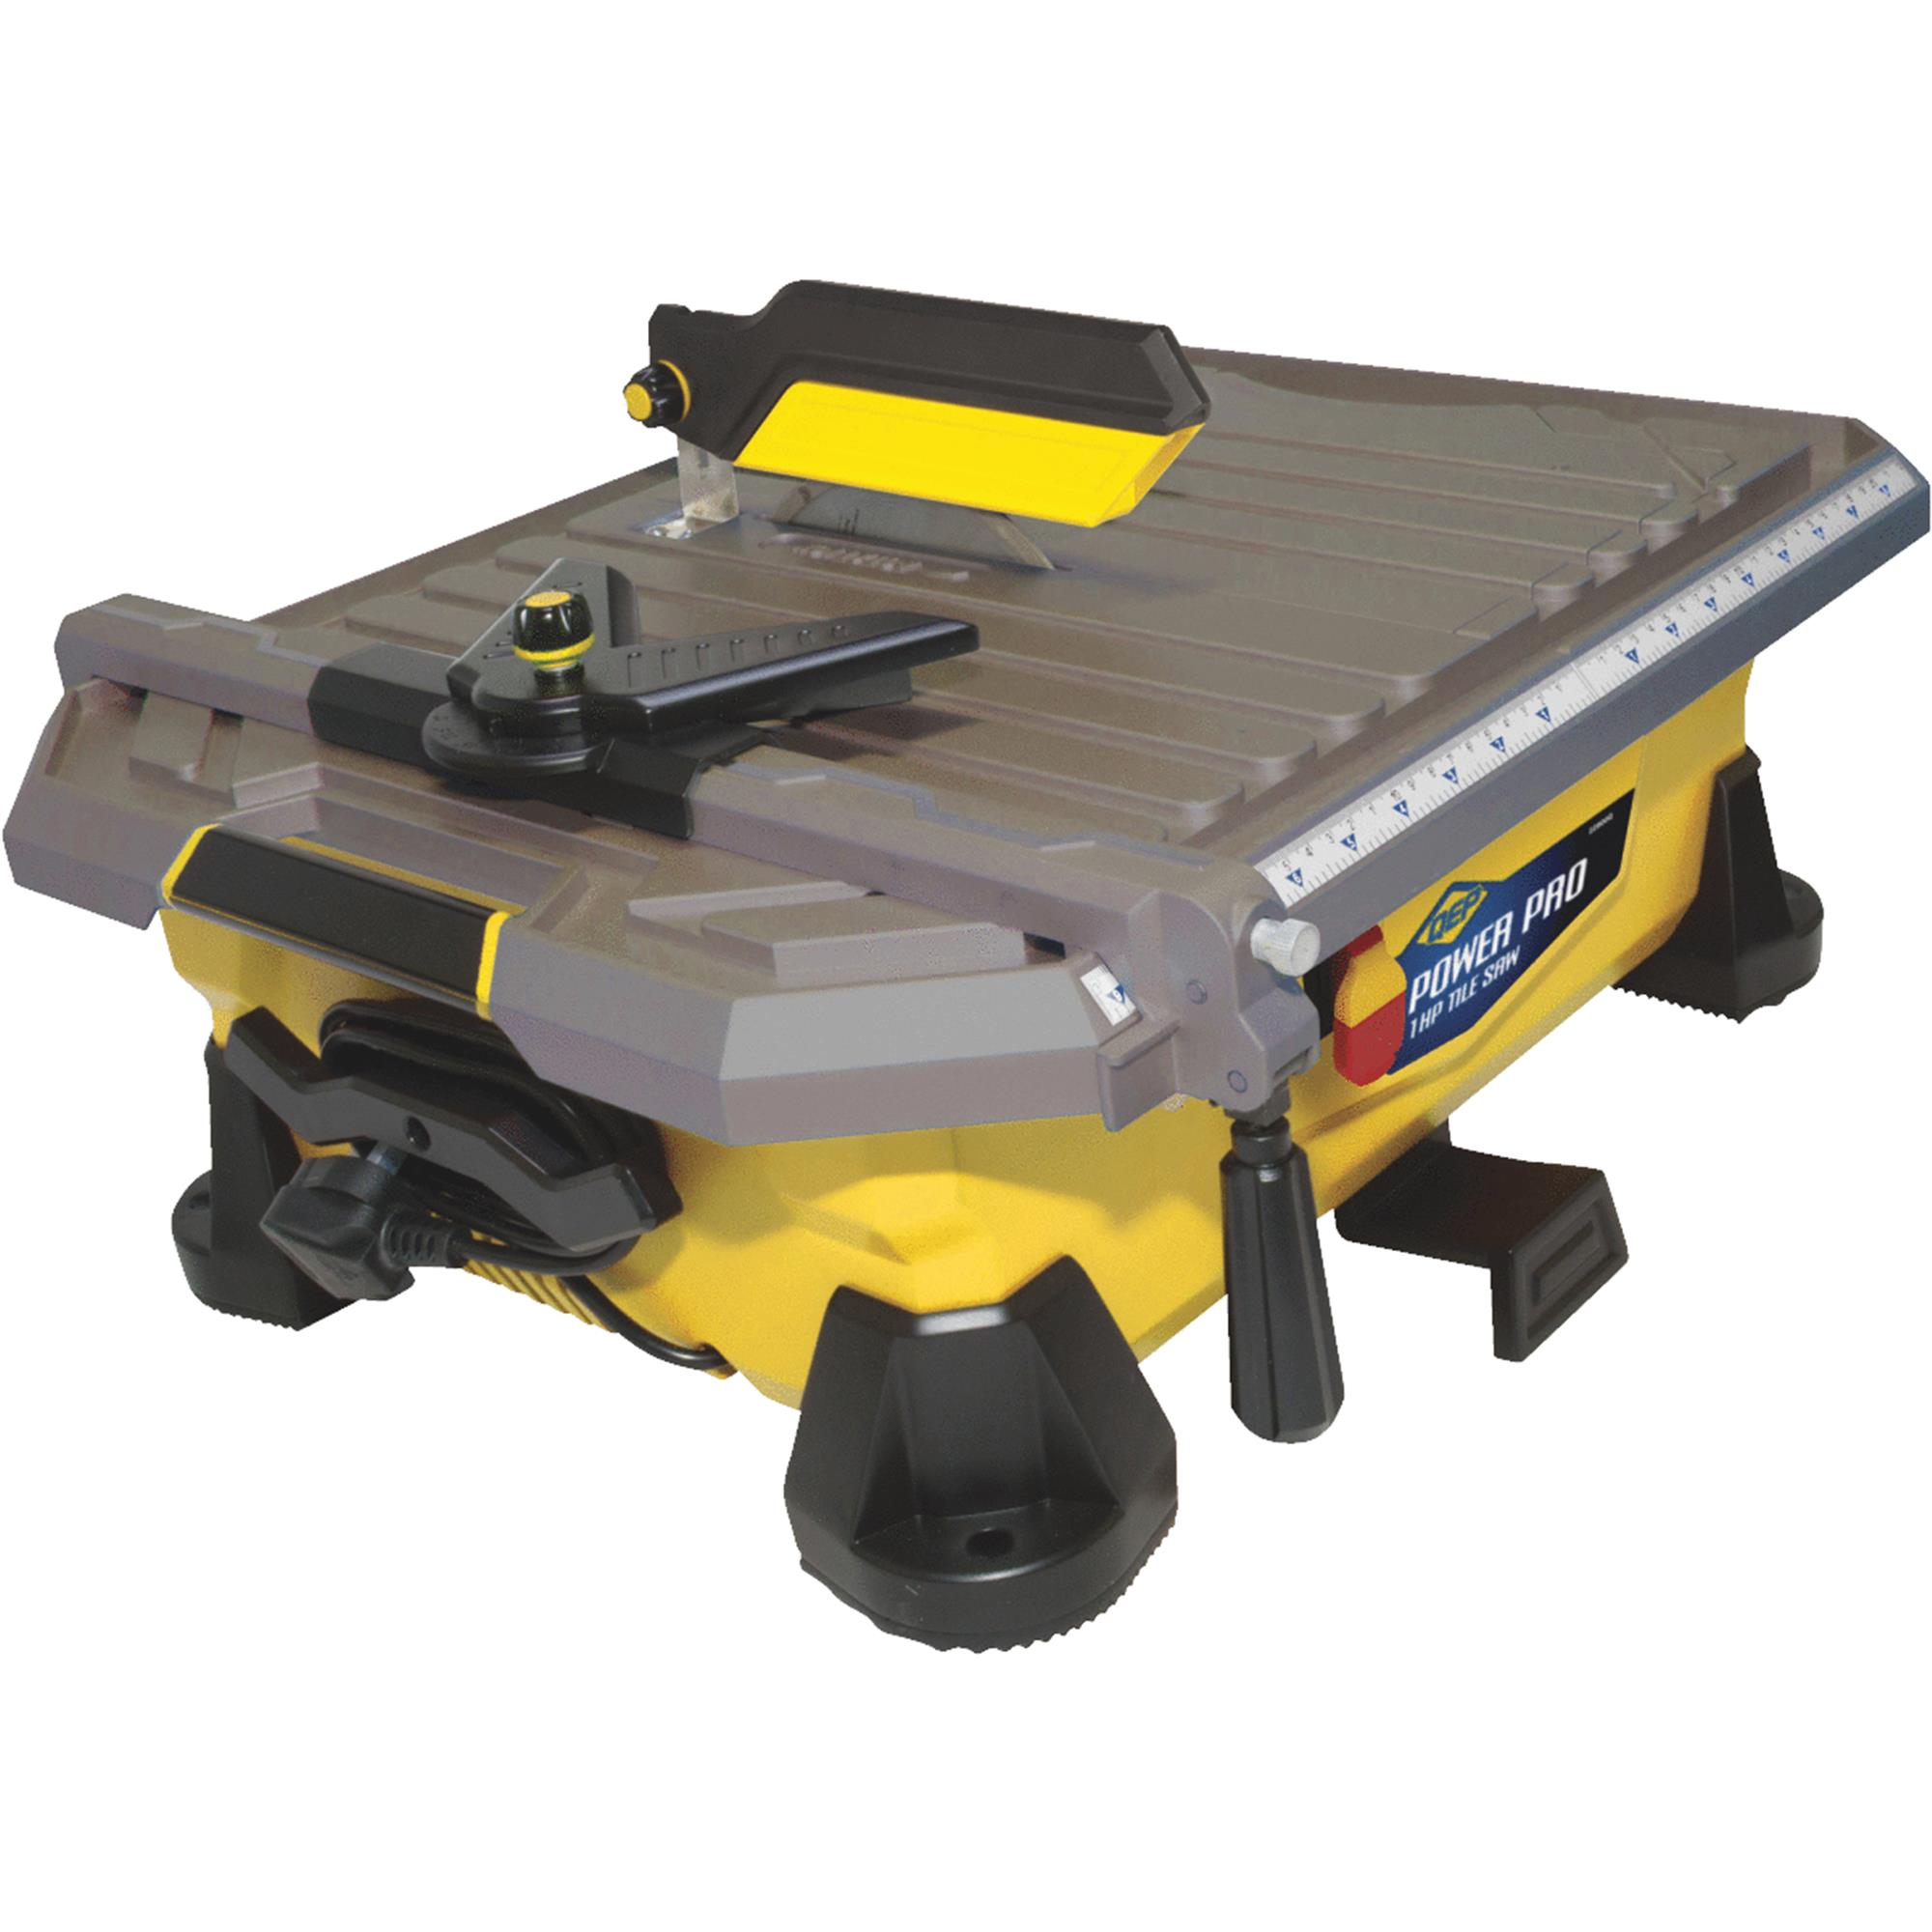 "QEP 7"" Power Pro Tile Saw"